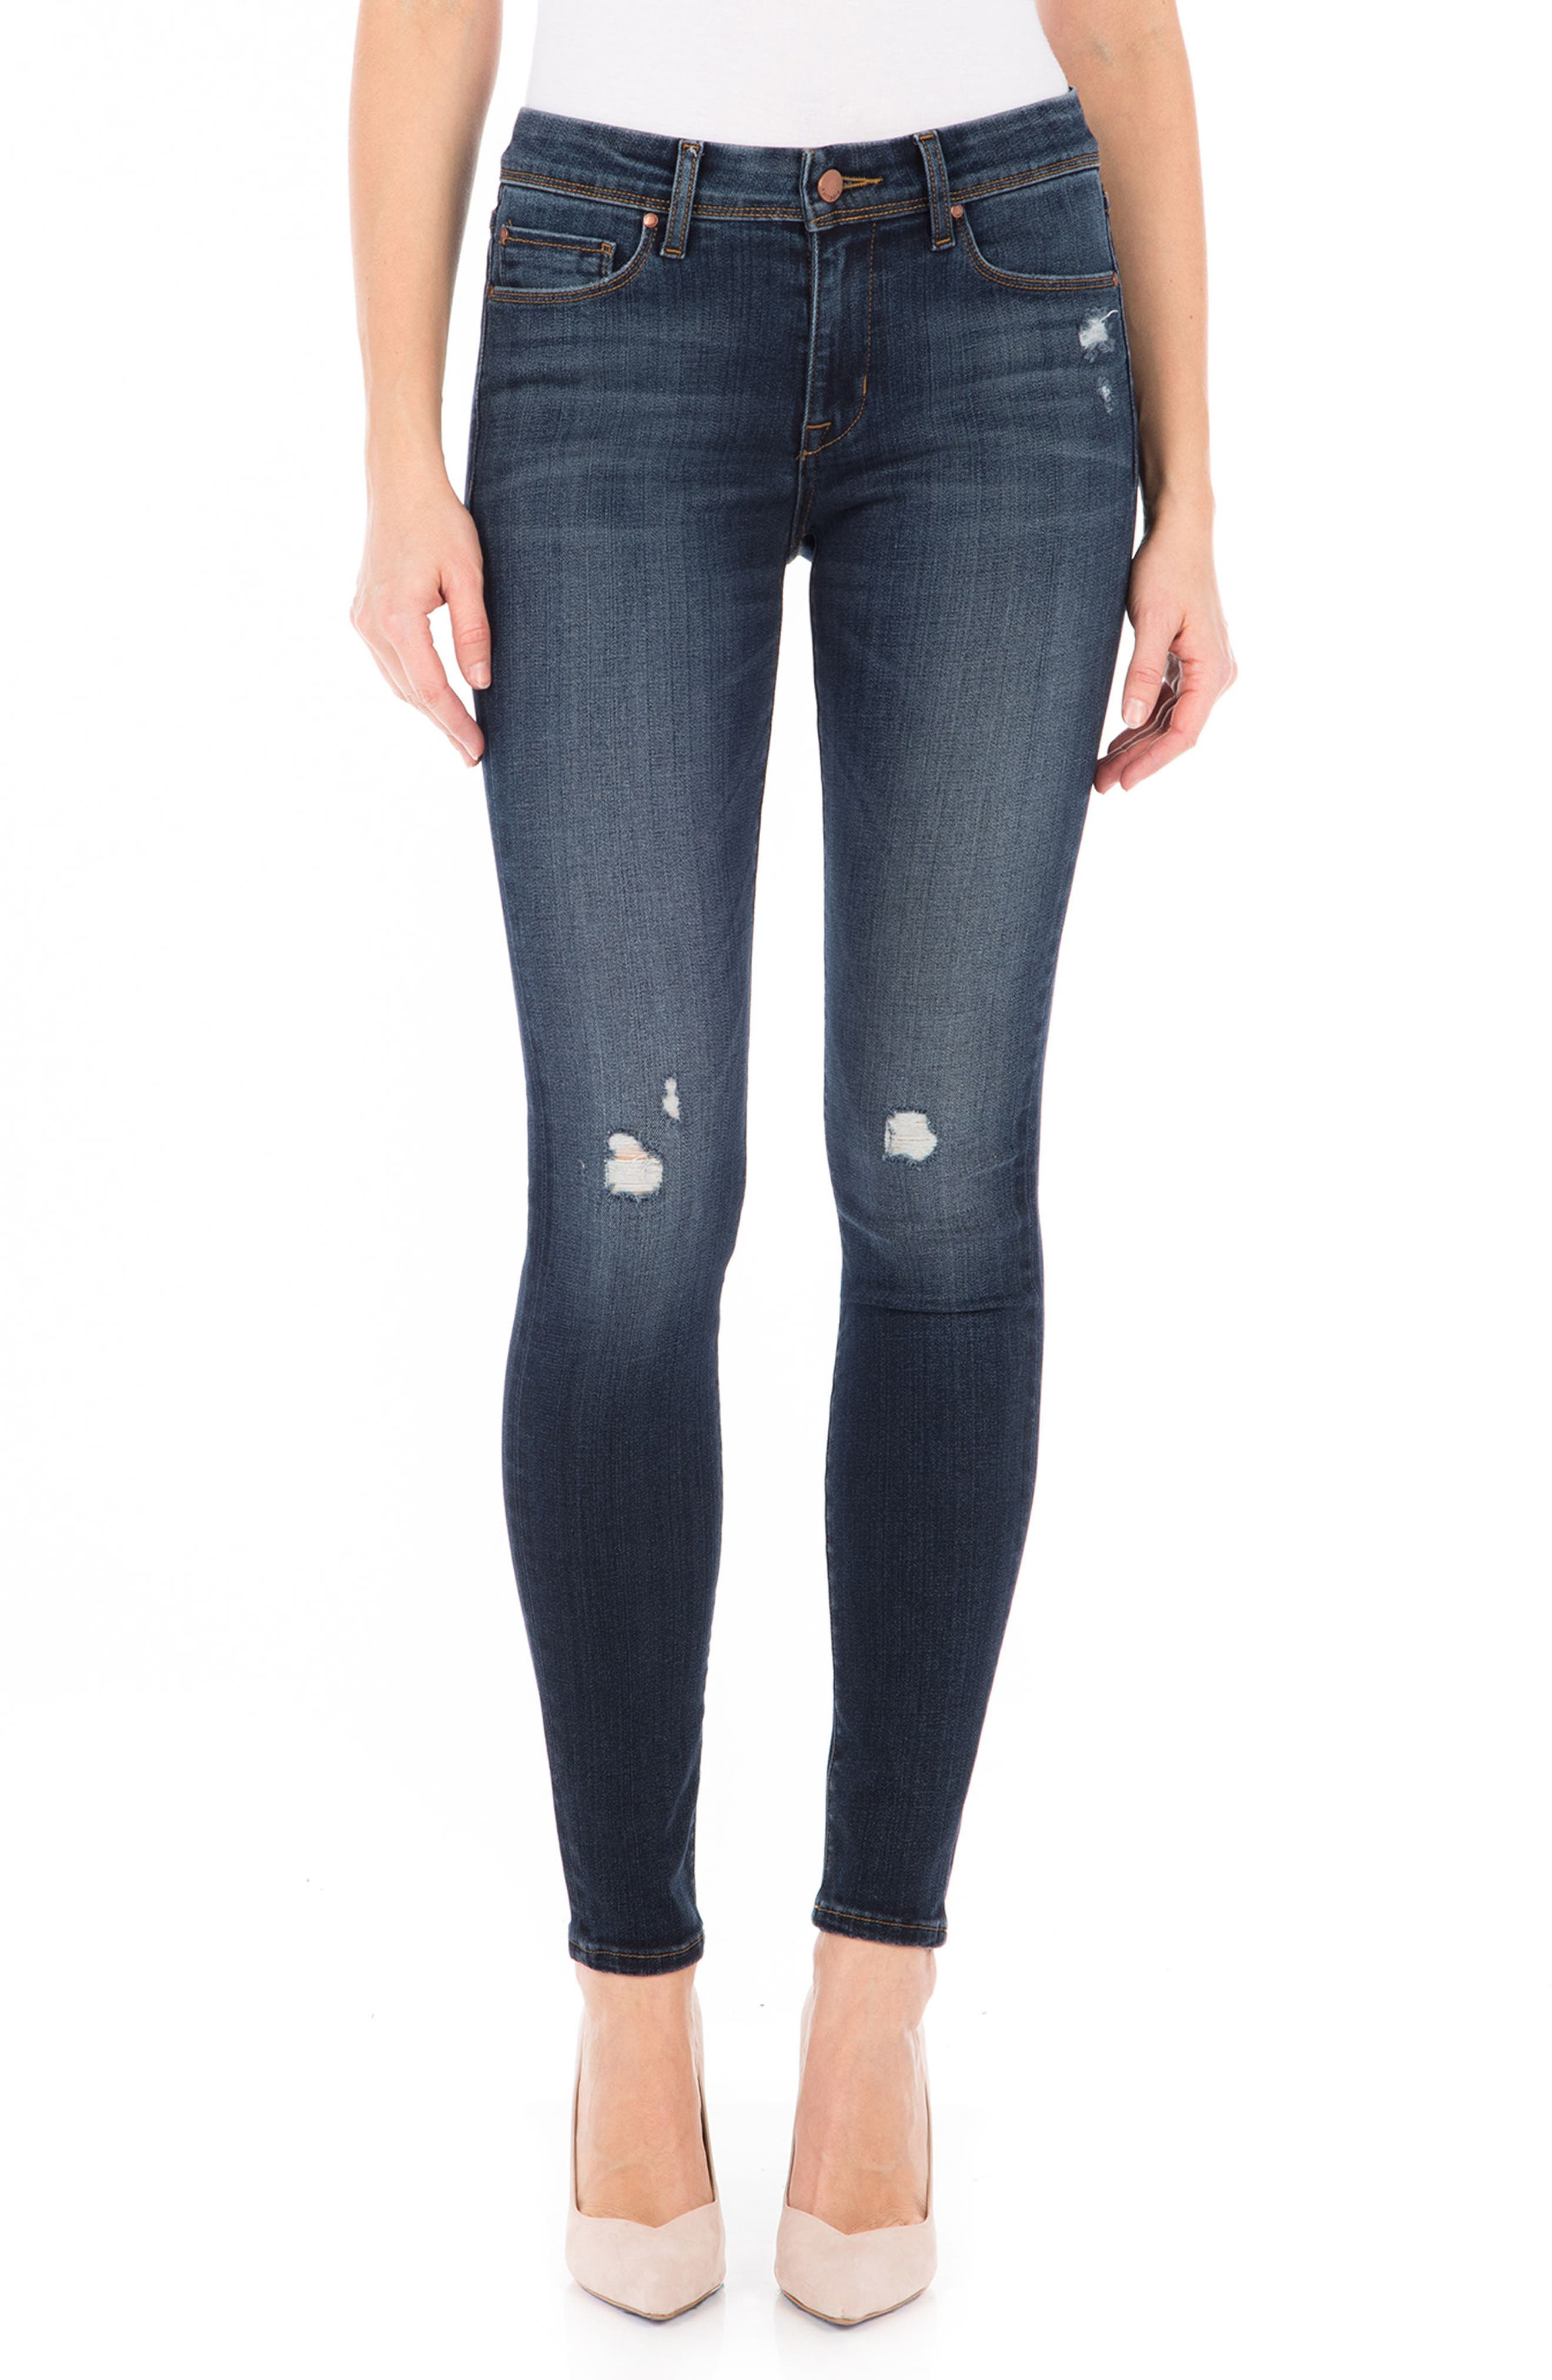 Belvedere Skinny Jeans,                         Main,                         color, Refinery Blue